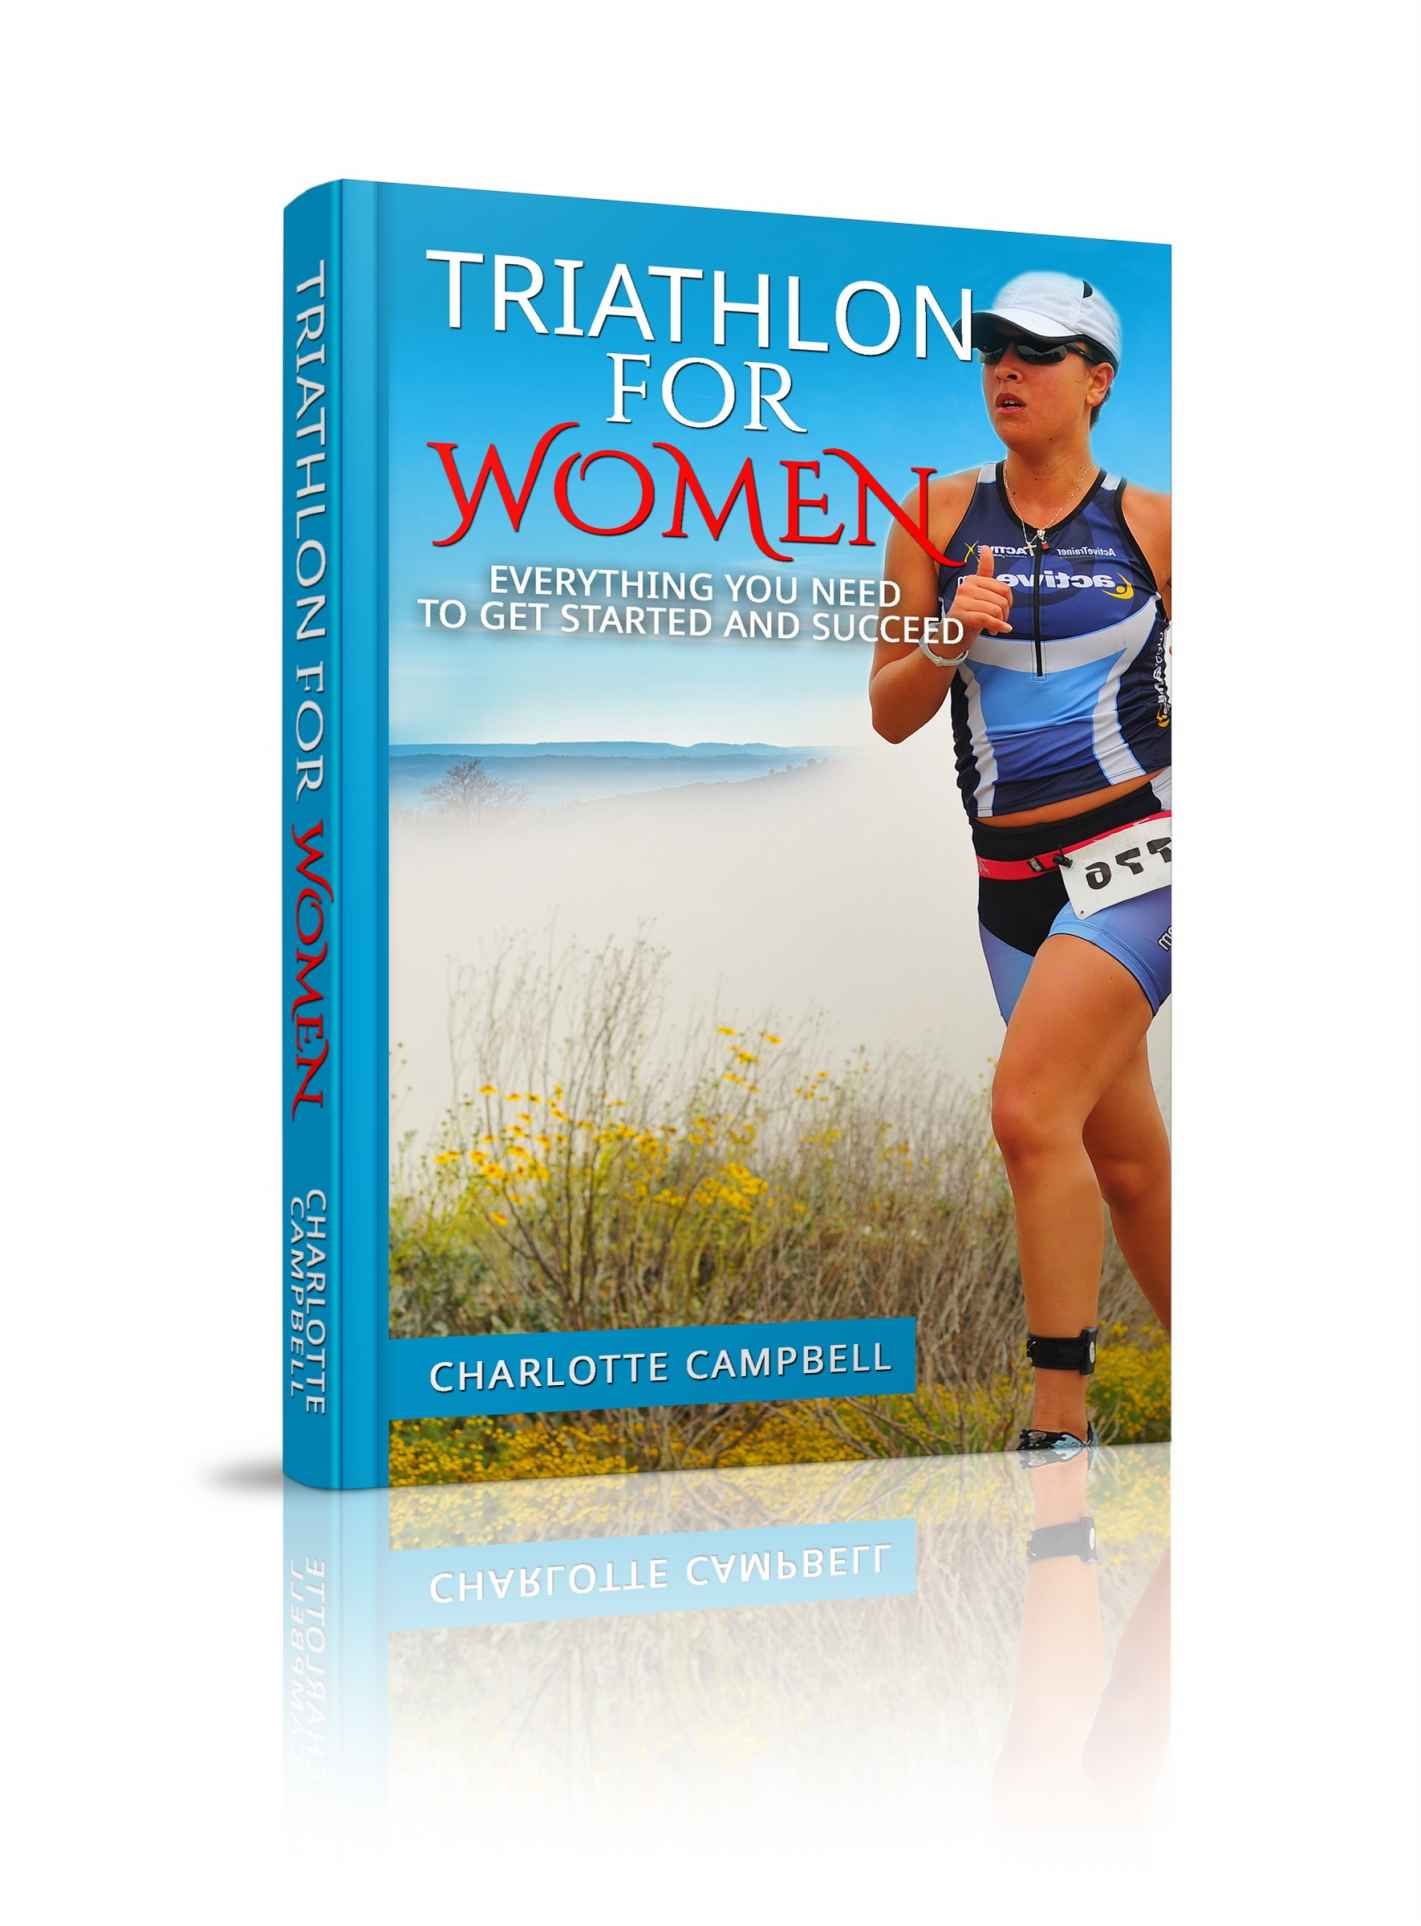 Triathlon for Women: Everything you need to know to get started and succeed by Charlotte Campbell